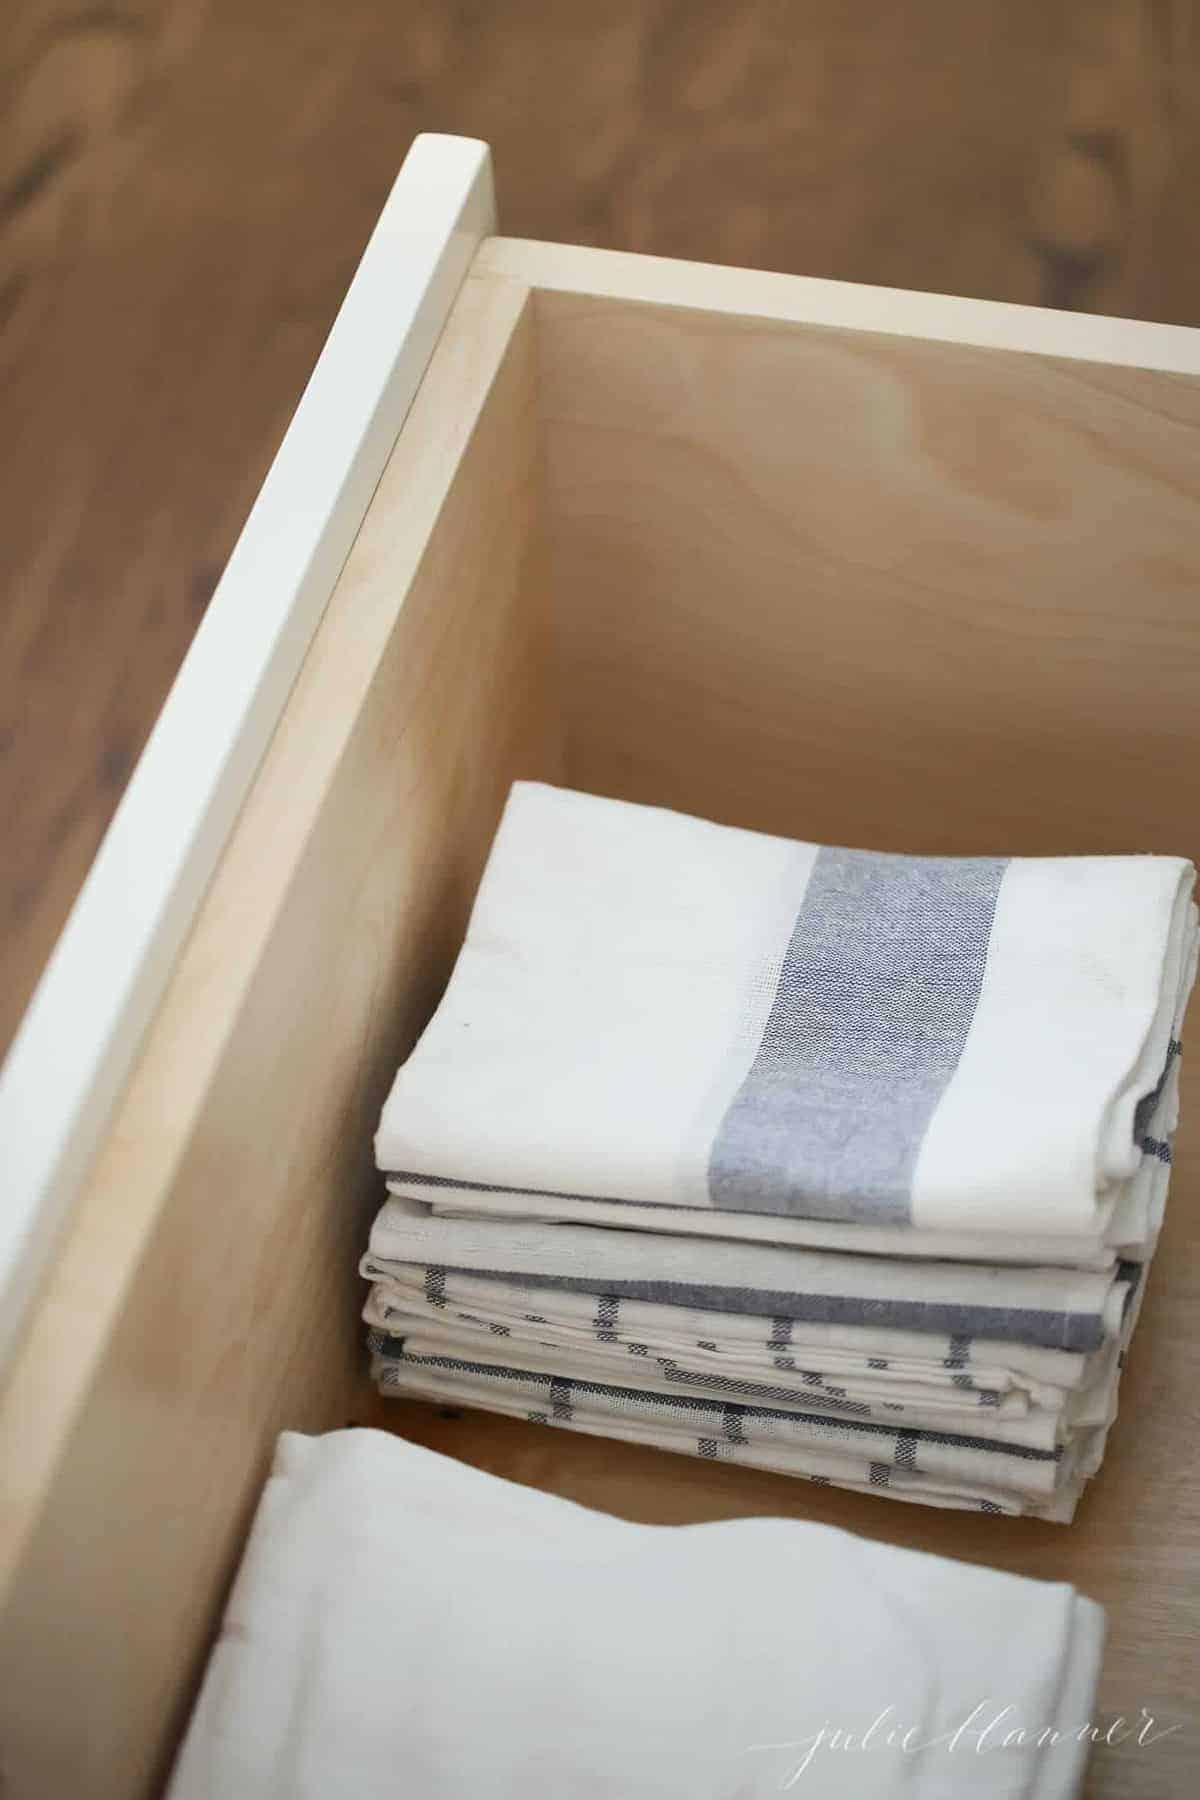 Looking inside a kitchen drawer filled with stacks of striped kitchen towels.